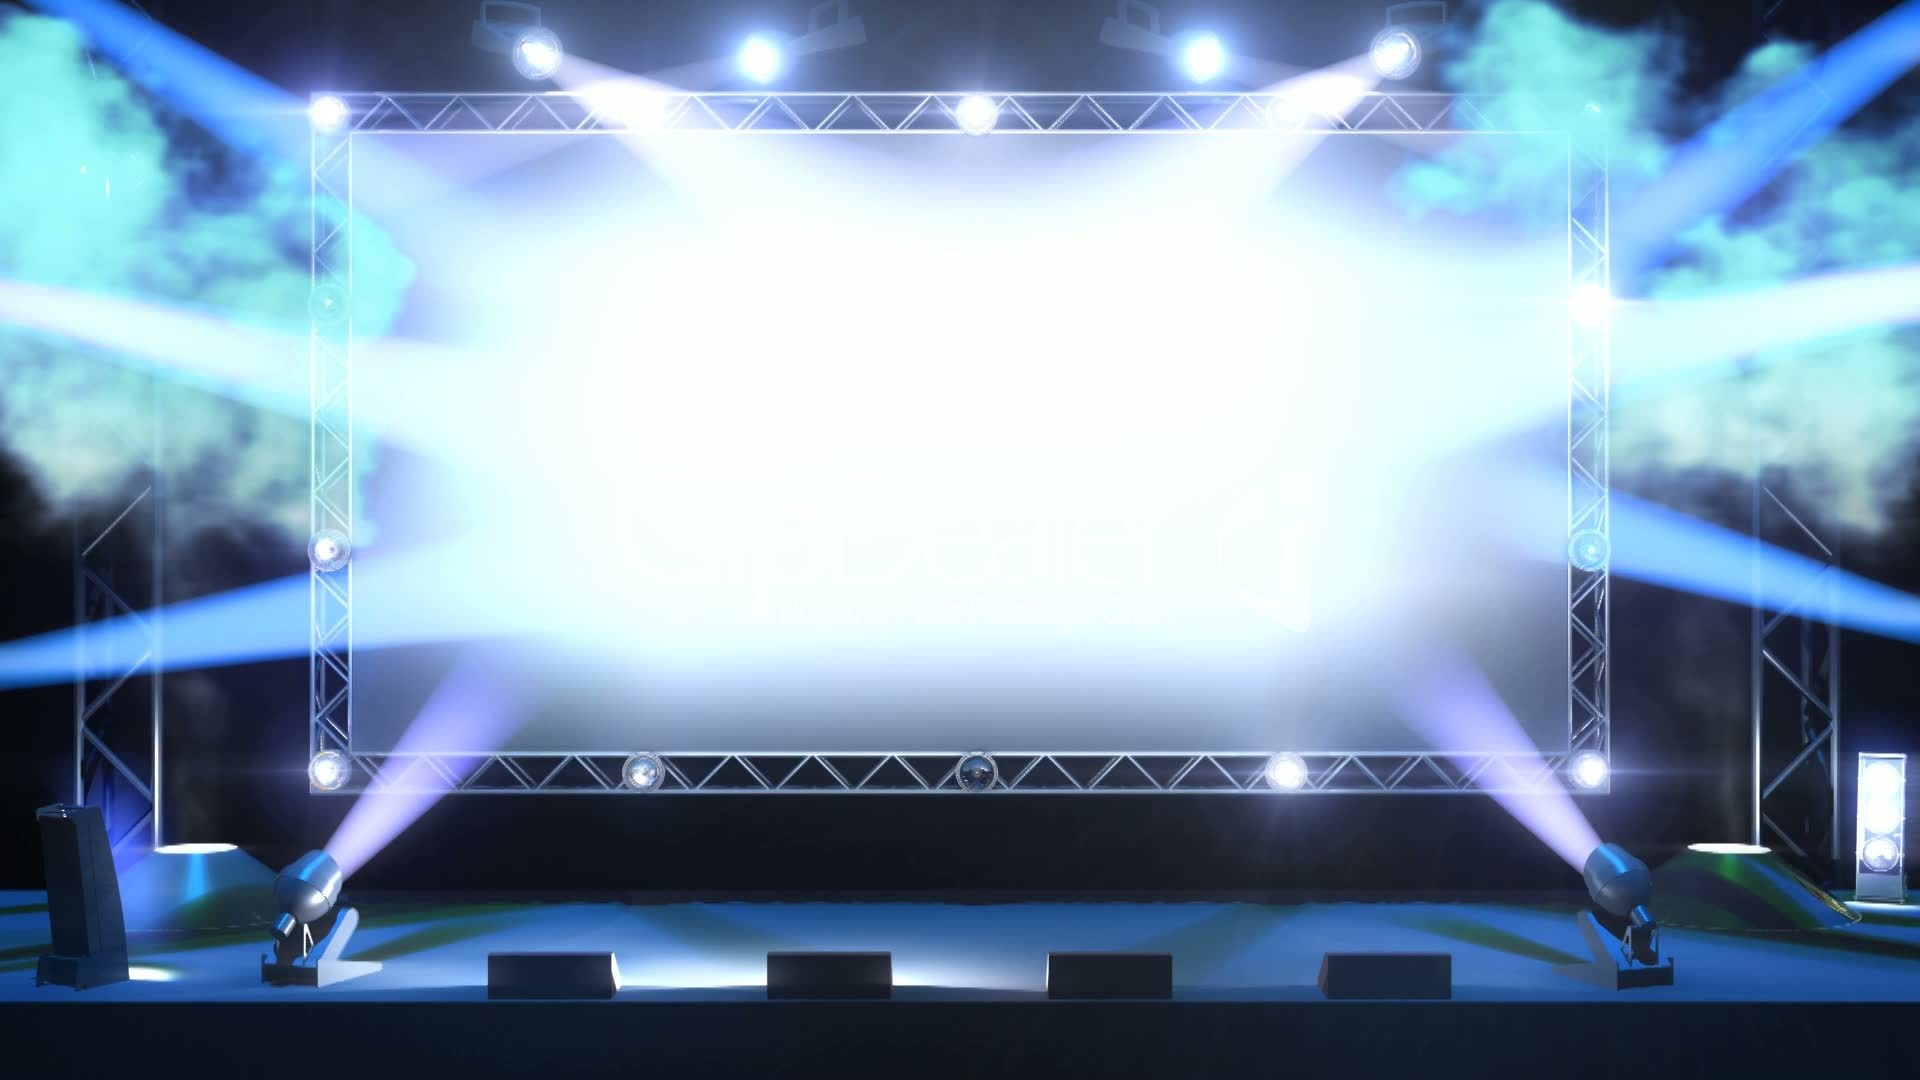 Concert stage wallpaper